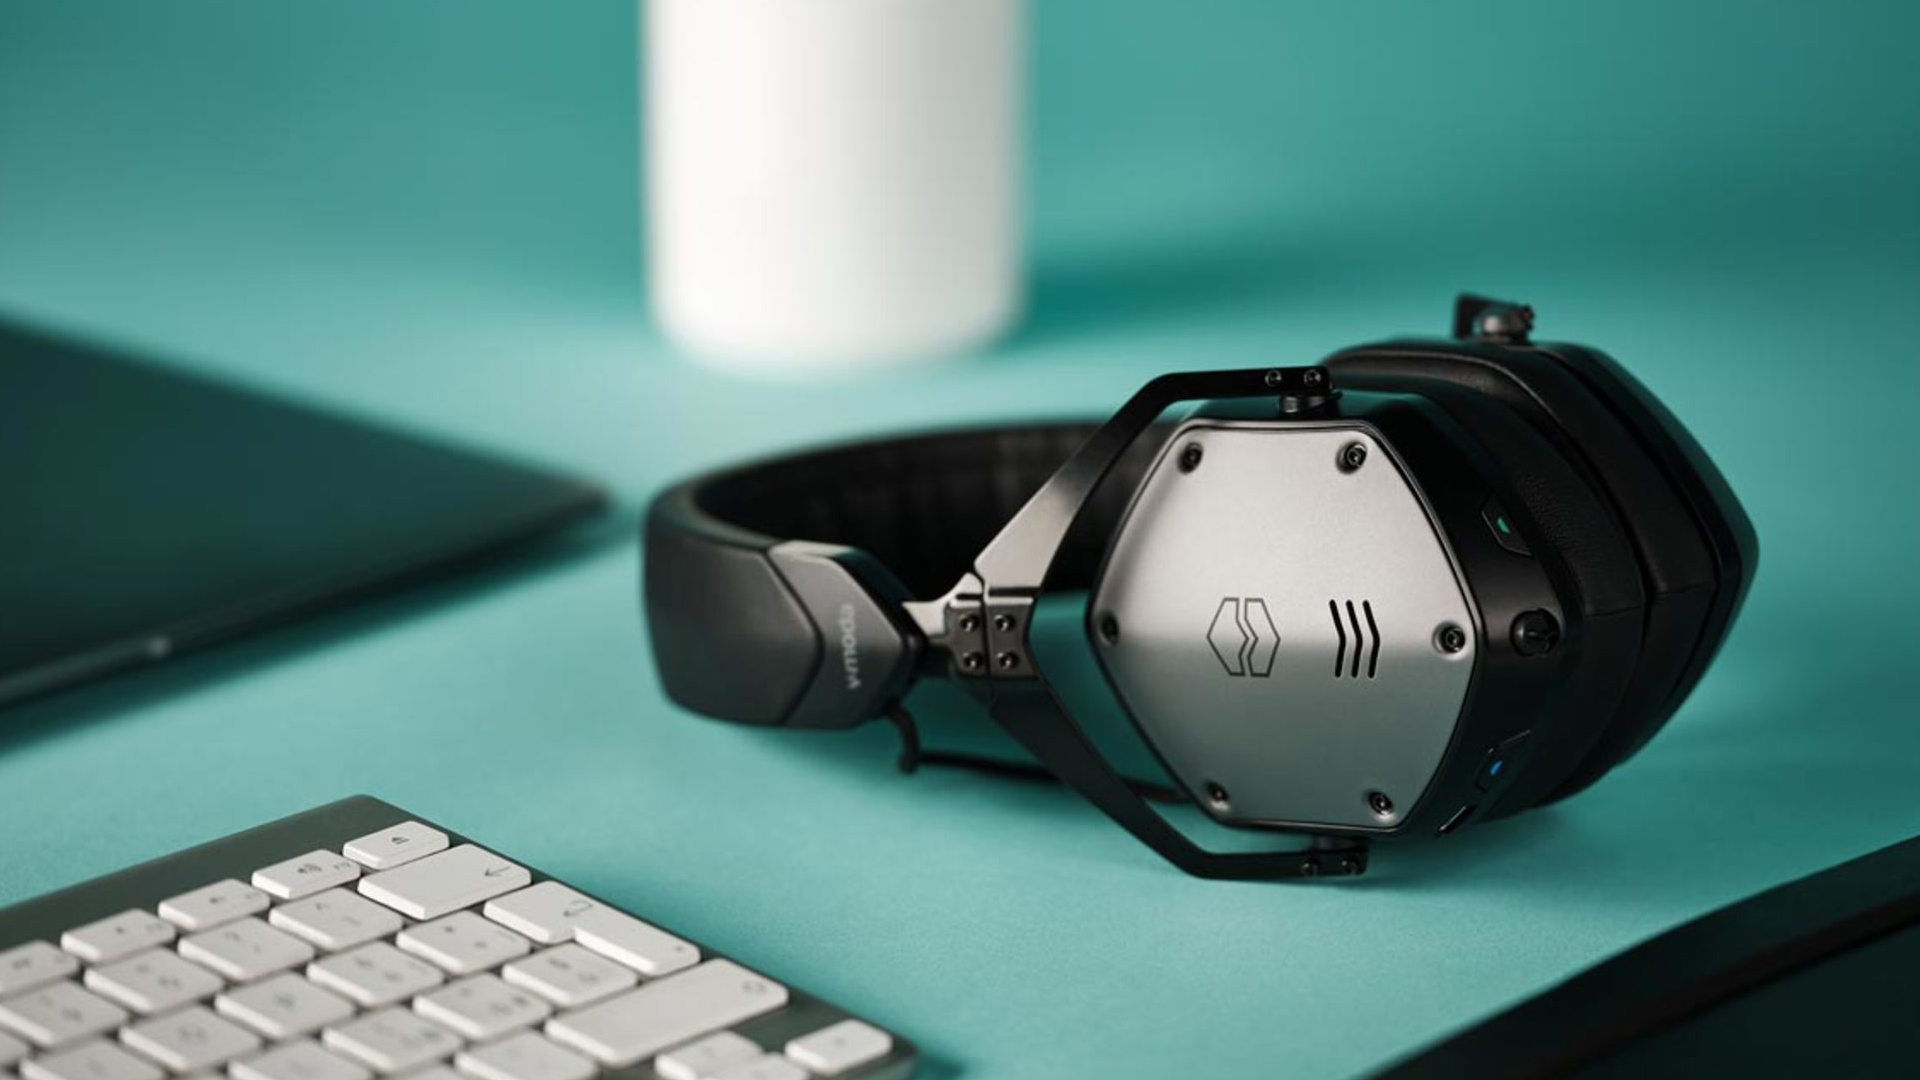 V MODA M-200 ANC on a teal desk next to keyboard